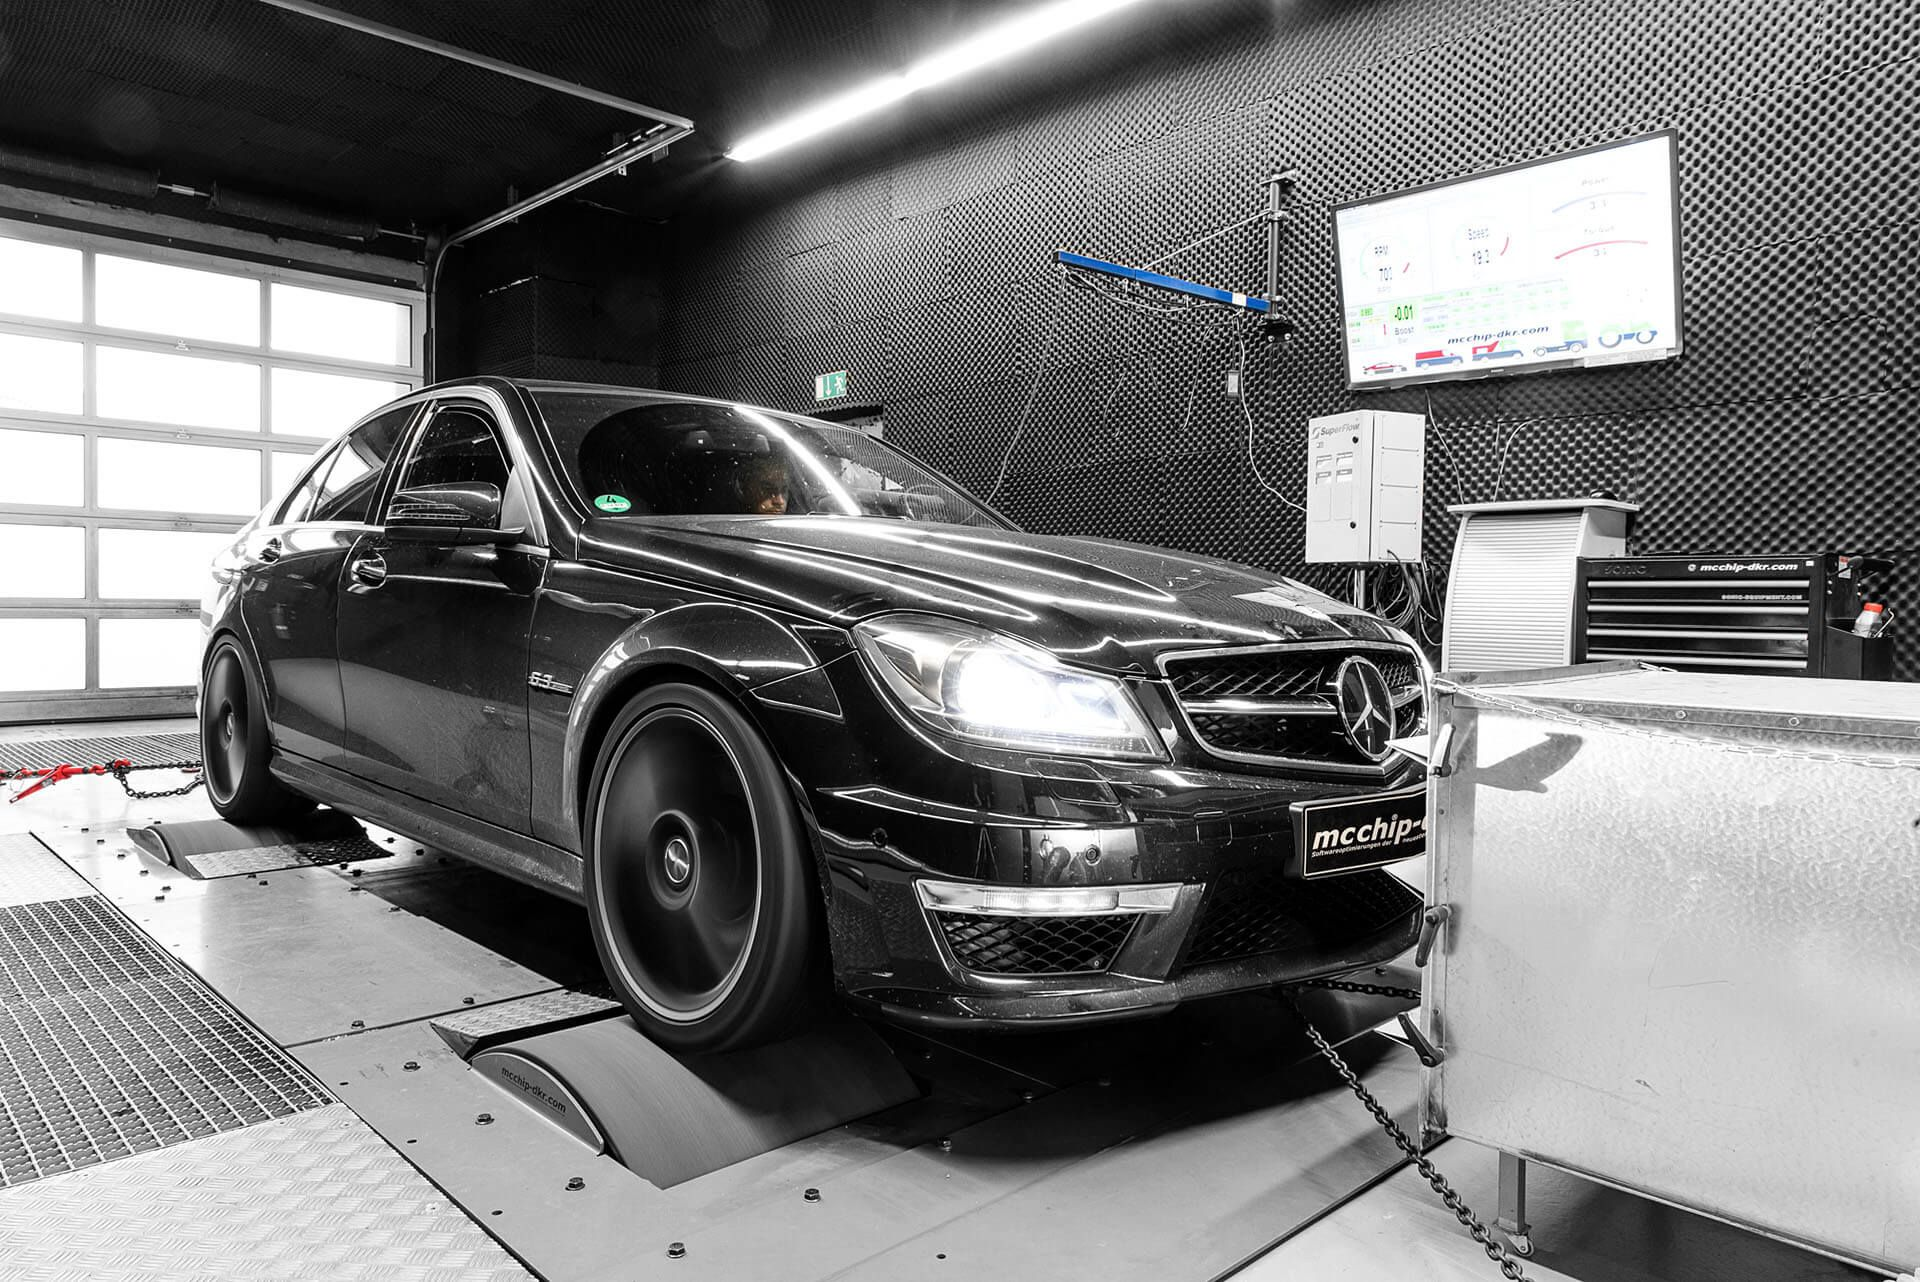 McChip-DKR Tuning Package for the Old Mercedes-AMG C63 is